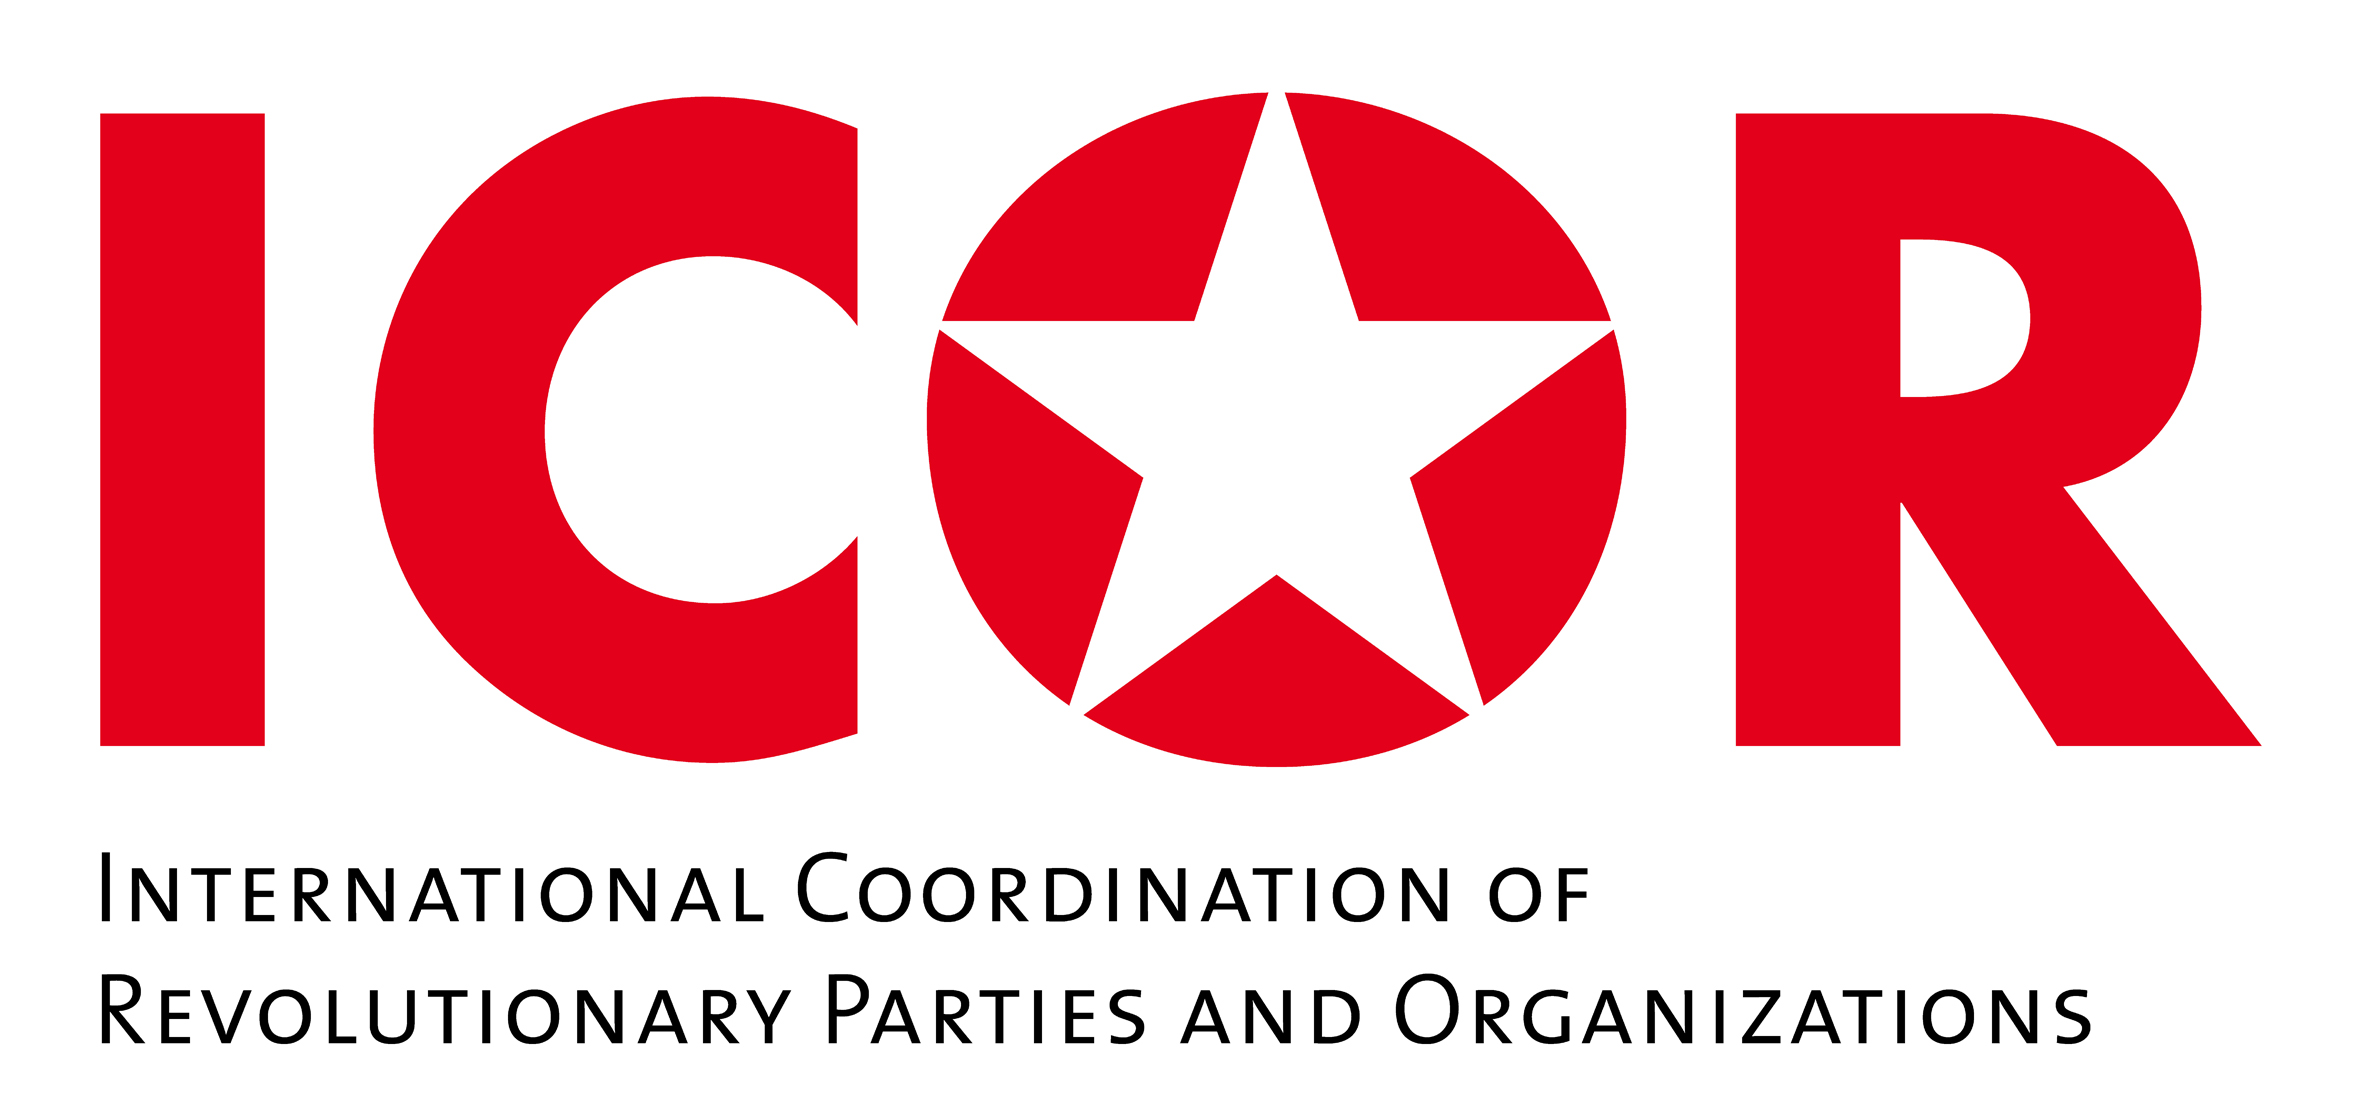 Call of ICOR  for the international day of struggle against fascism and war on 08/09 May, 06 August and 01 September, 2018